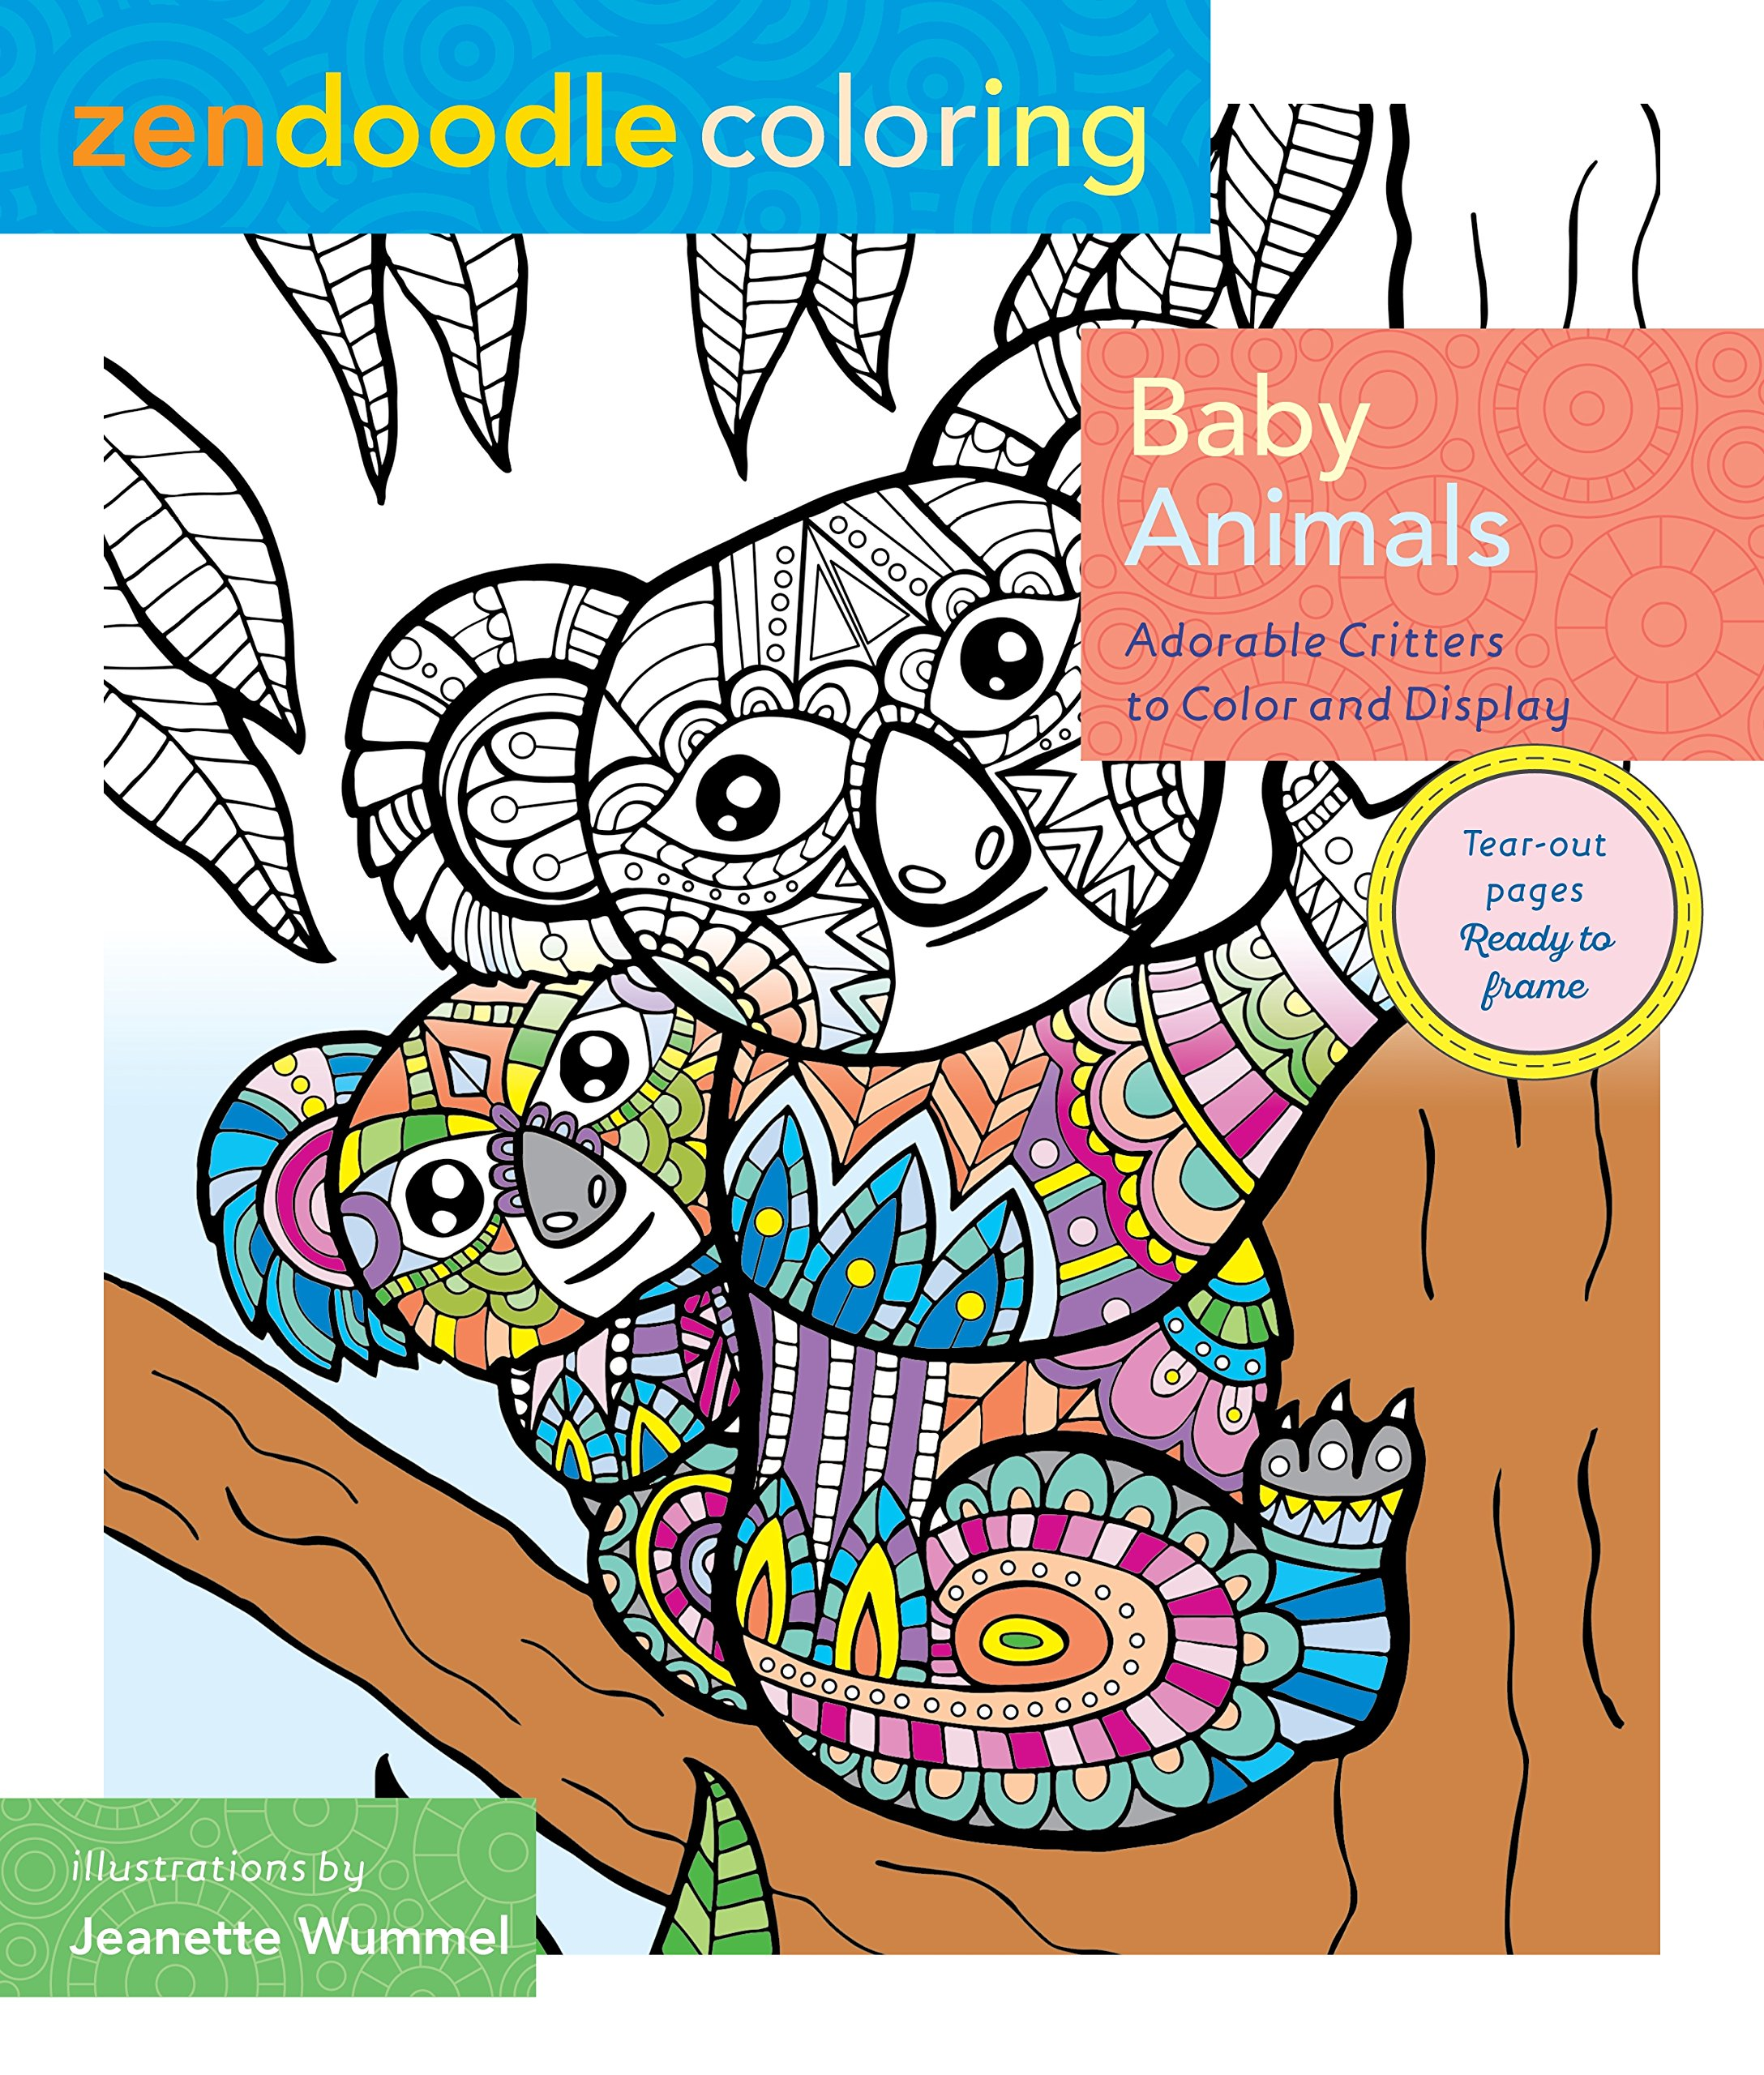 amazon com zendoodle coloring baby animals adorable critters to